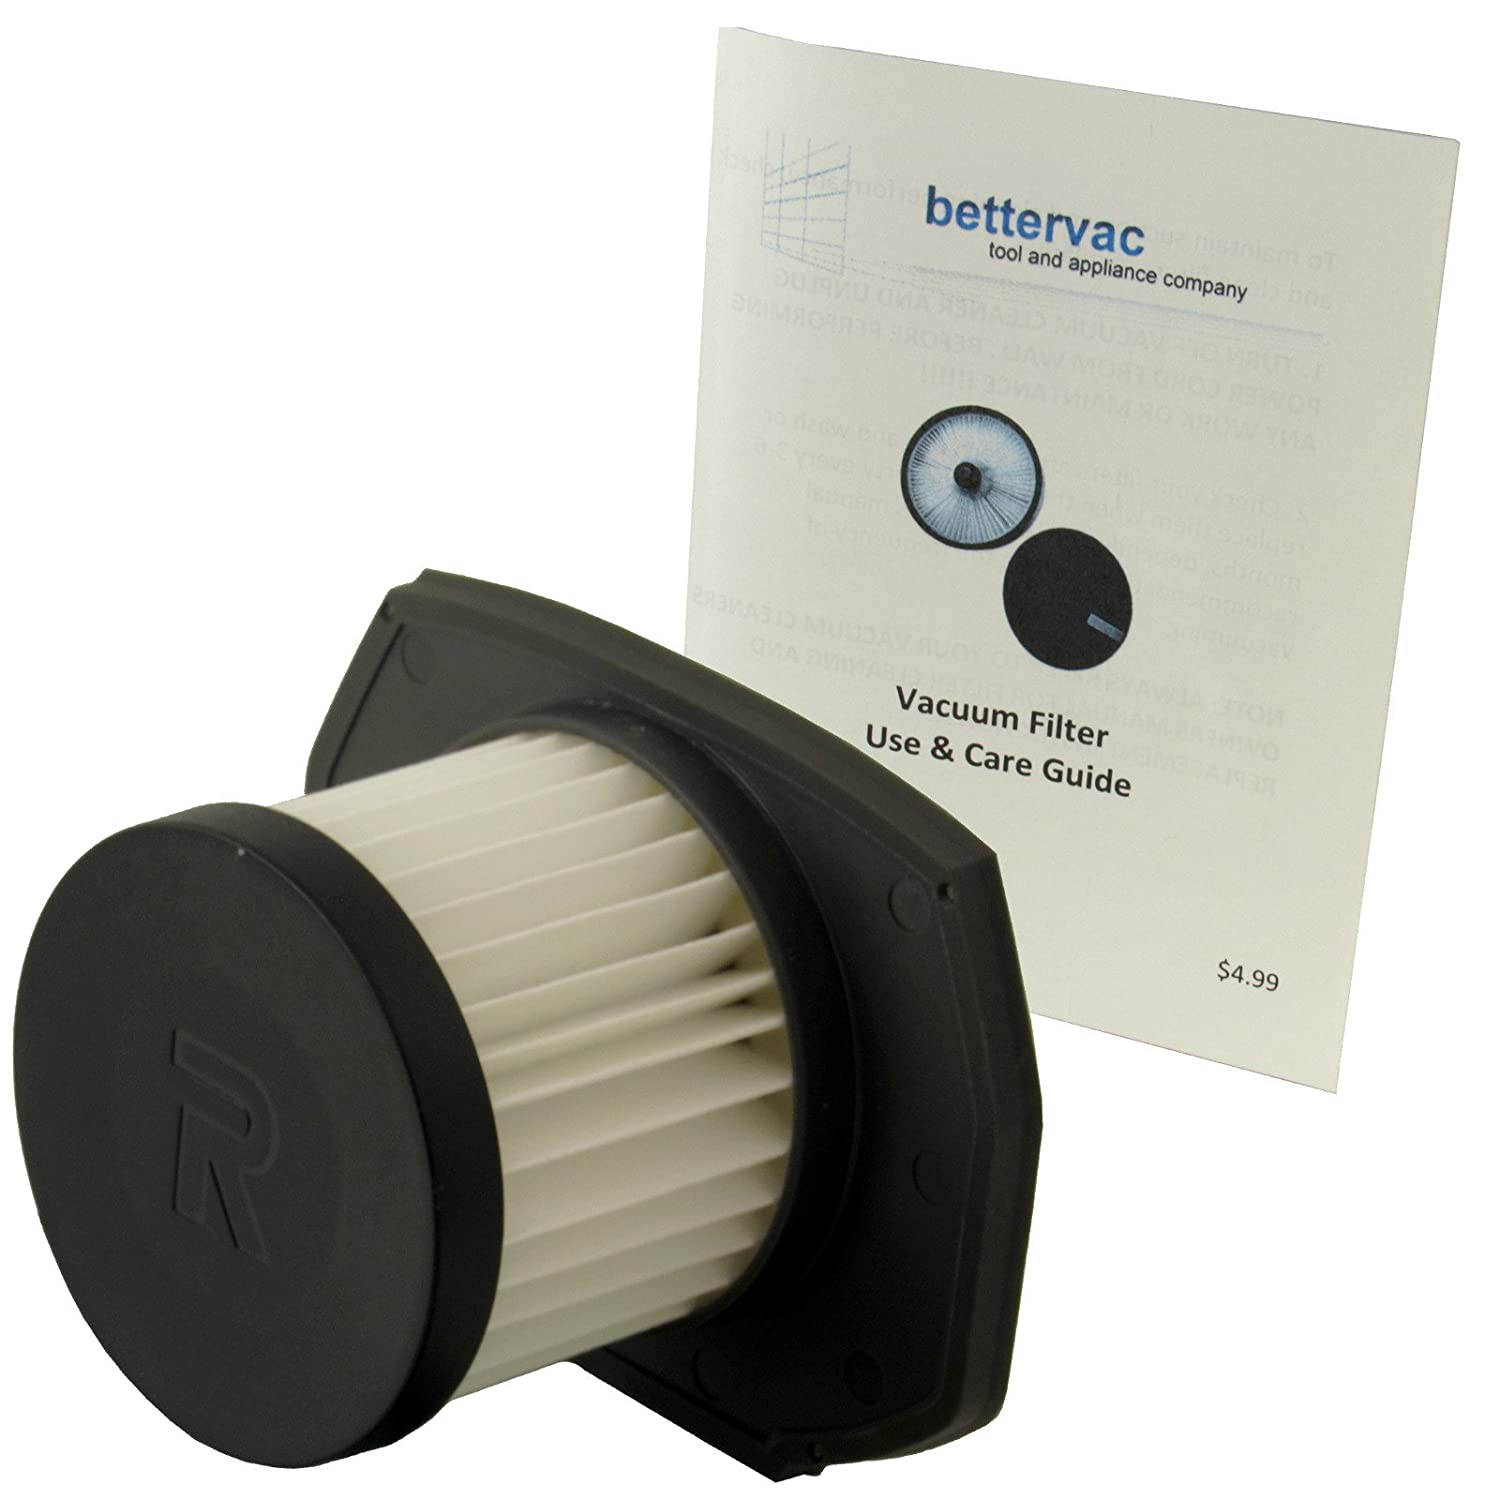 Ryobi 18 Volt Strut Stick Vacuum Air Filter Assembly #313282001 Bundled With Use & Care Guide Techtronic Industries